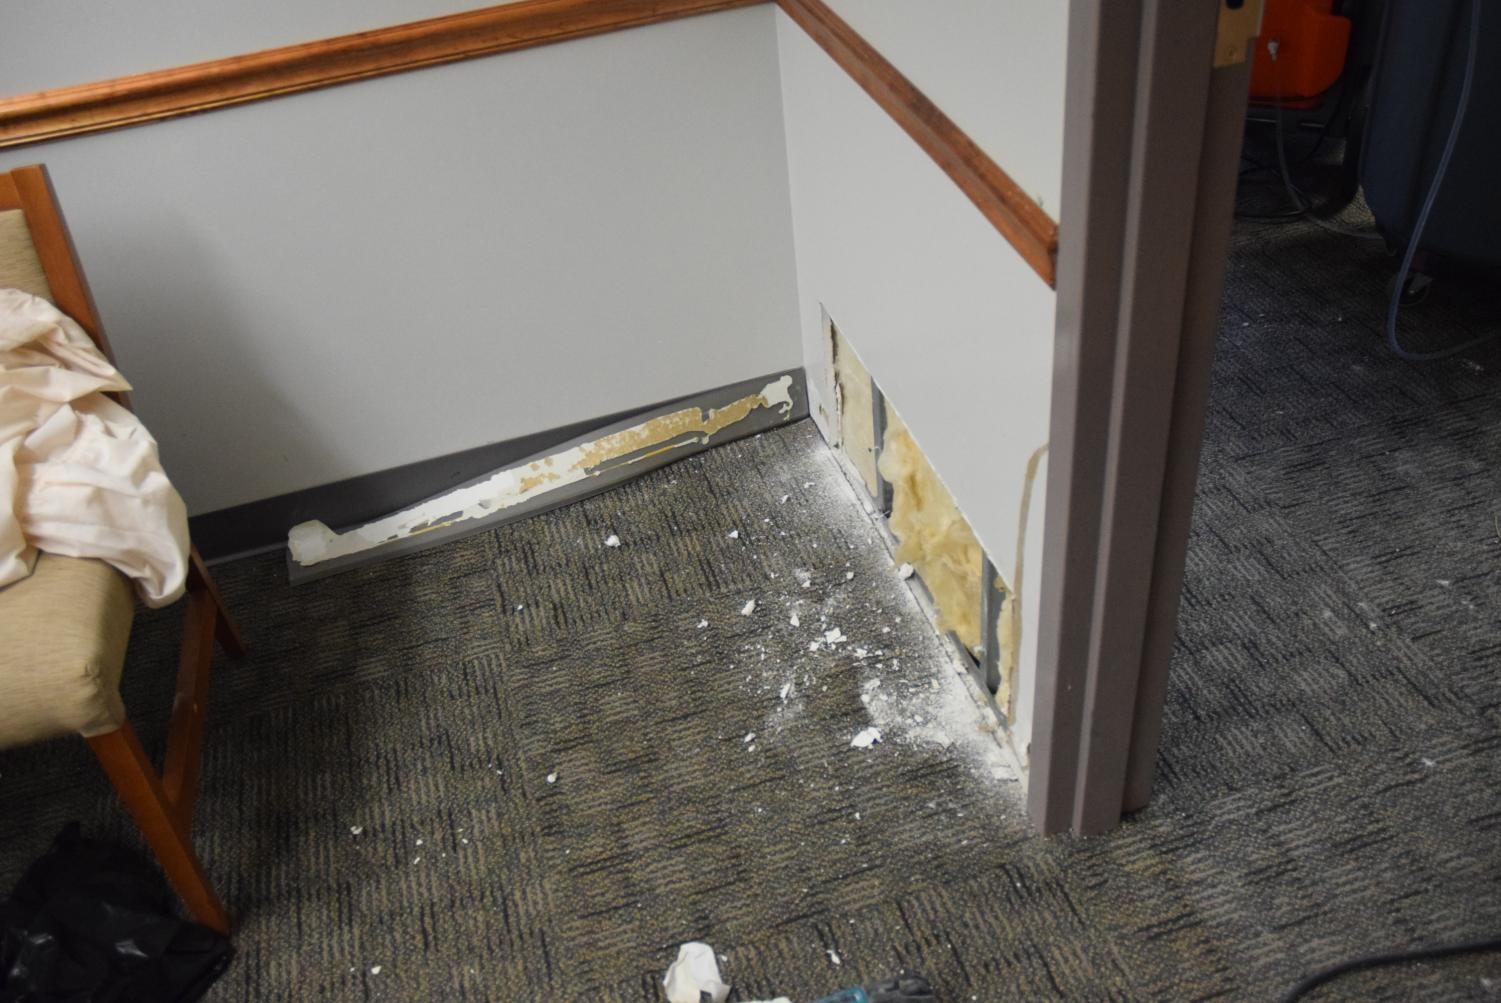 Workers have begun replacing the drywall in B125 which was damaged when the pipes in Mr. Facchin's room burst and leaked water into the classes and offices below.